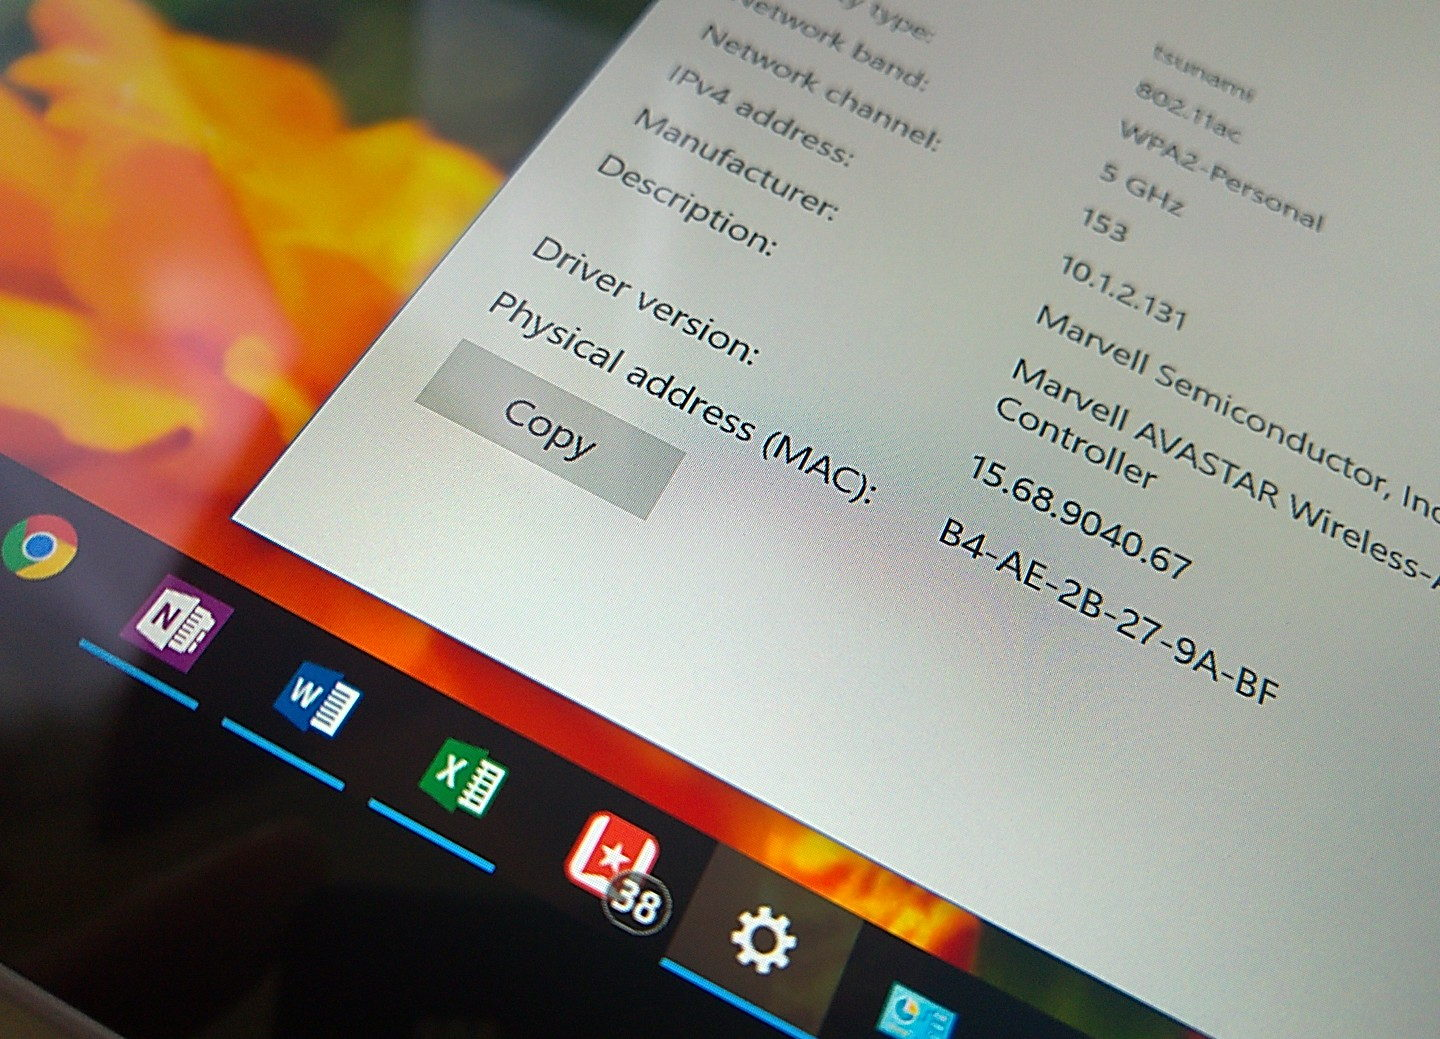 How To Find The Mac Address Of Your Network Adapter On Windows 10 Usb Wireless Lan Access Control